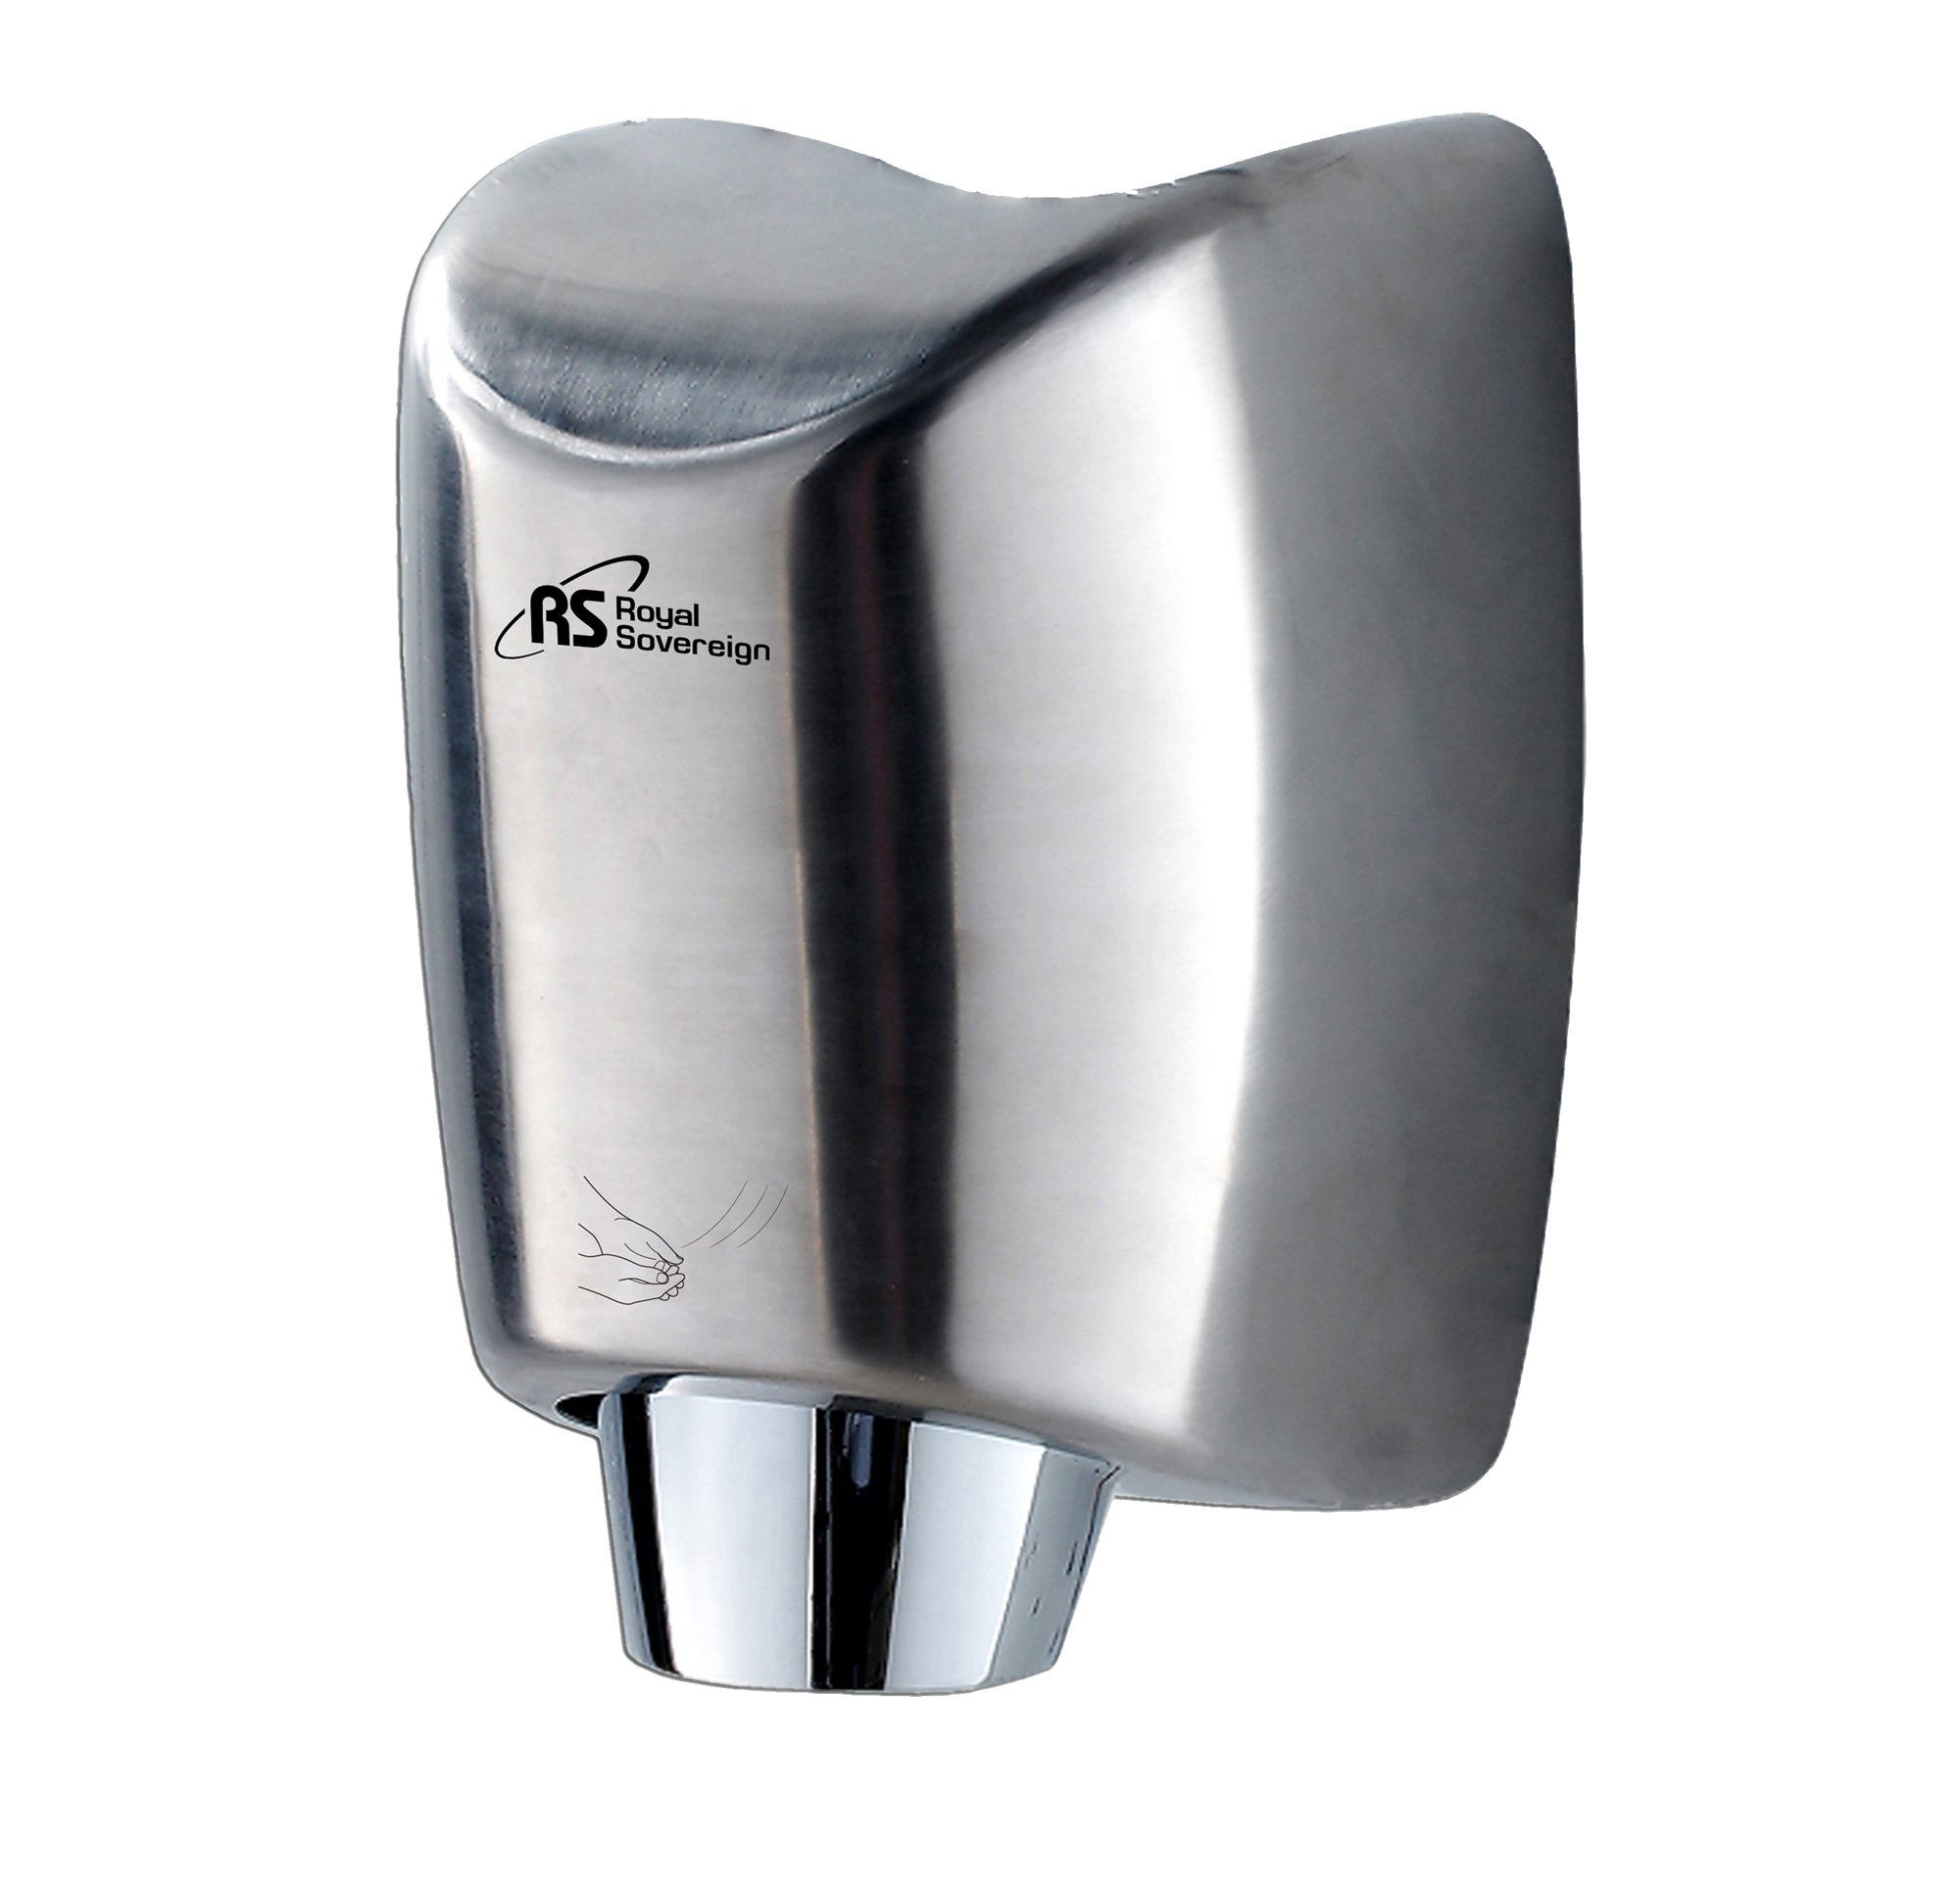 Royal Sovereign Premium Touchless Automatic Hand Dryer, 15 seconds Operating Time, 1400 Watt Stainless Steel, with air nozzel (RTHD-431SS) by Royal Sovereign